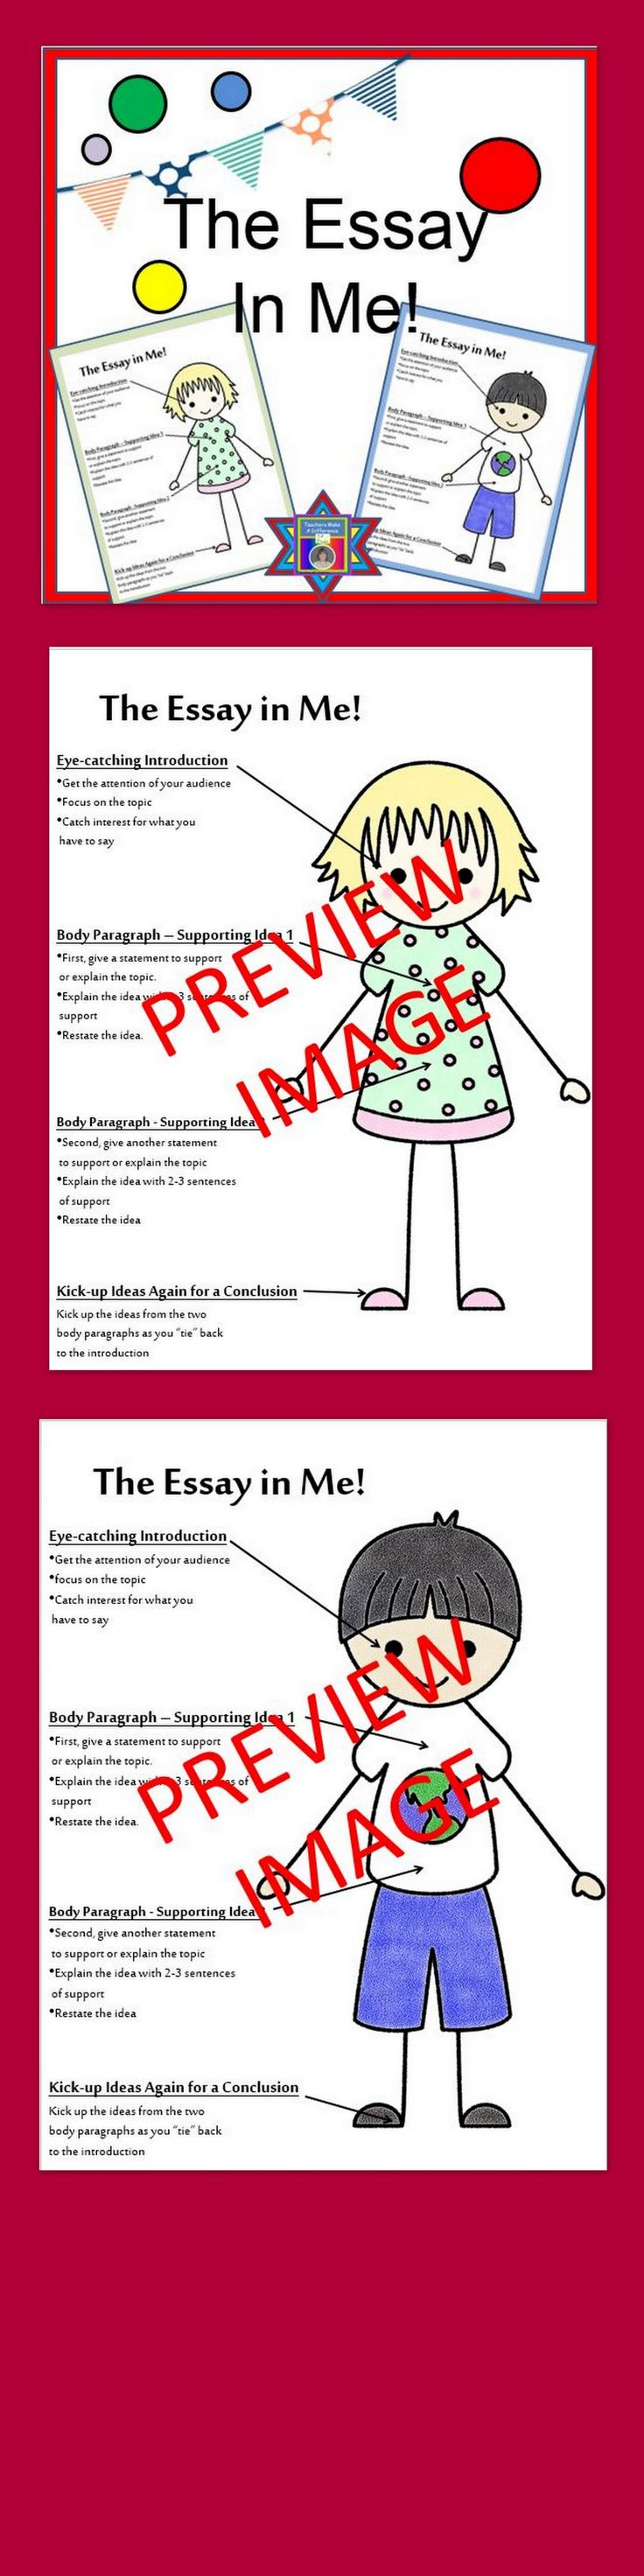 17 best images about essay writing anchor charts writing an essay writing teacher teacher board writing lessons writing ideas combining sources 2 combining boys students students organize